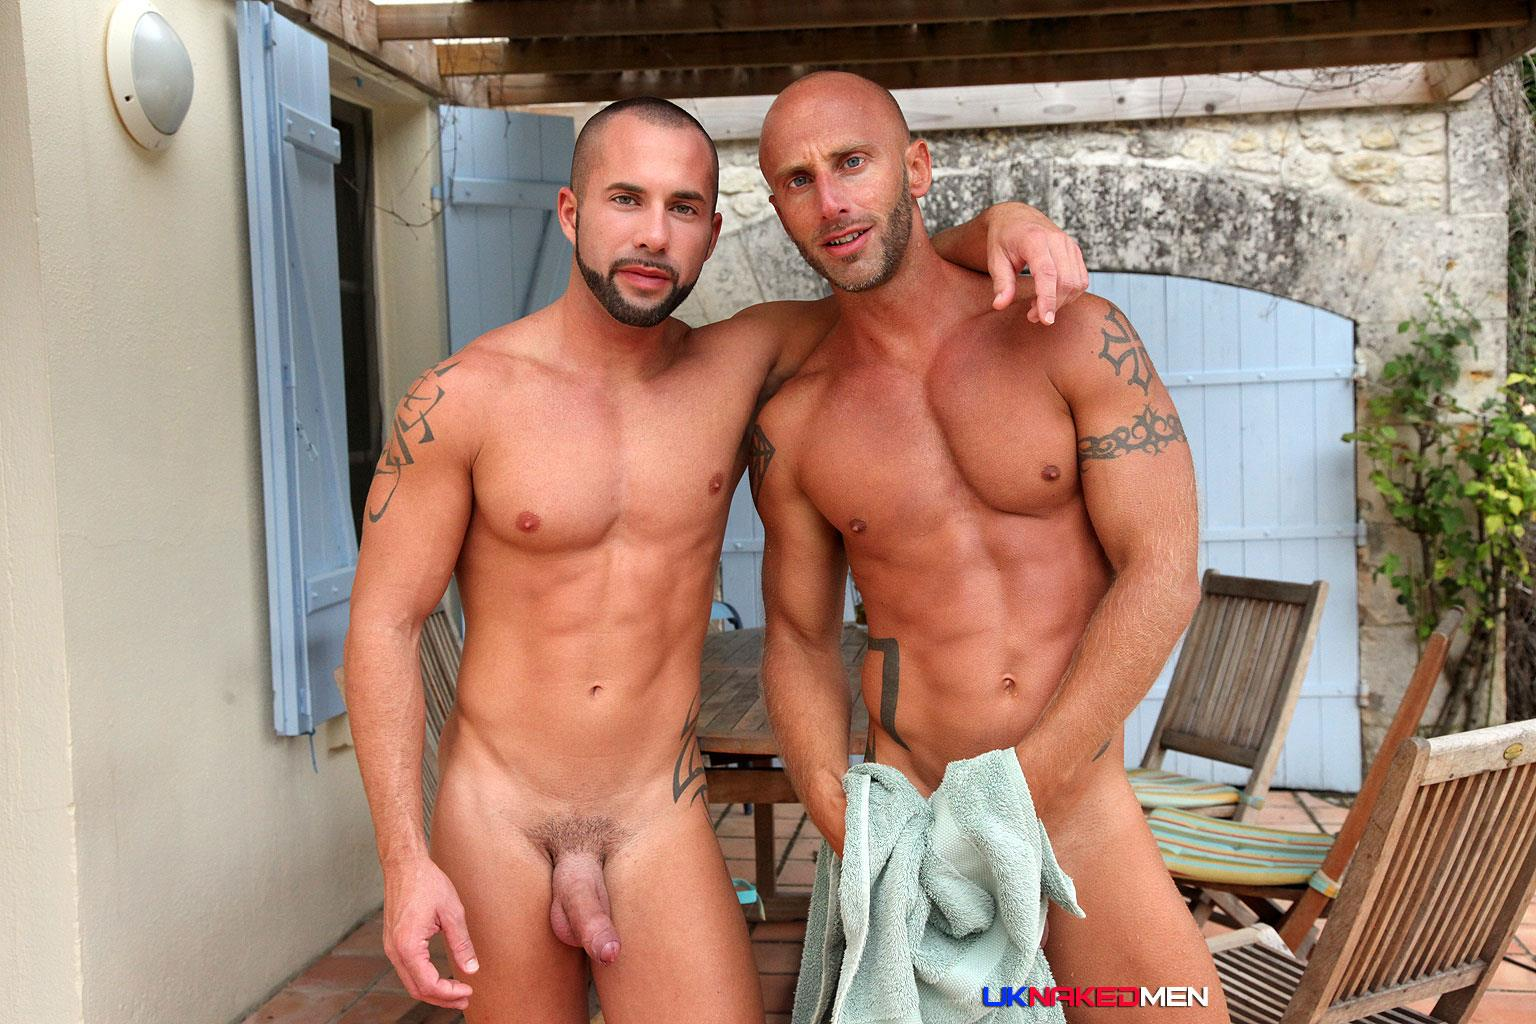 UK Naked Men Aymeric Deville and Craig Farrel Big Thick Uncut Cocks Fucking Amateur Gay Porn 22 Aymeric Deville And His Thick Uncut Cock Getting Fucked By A Stranger